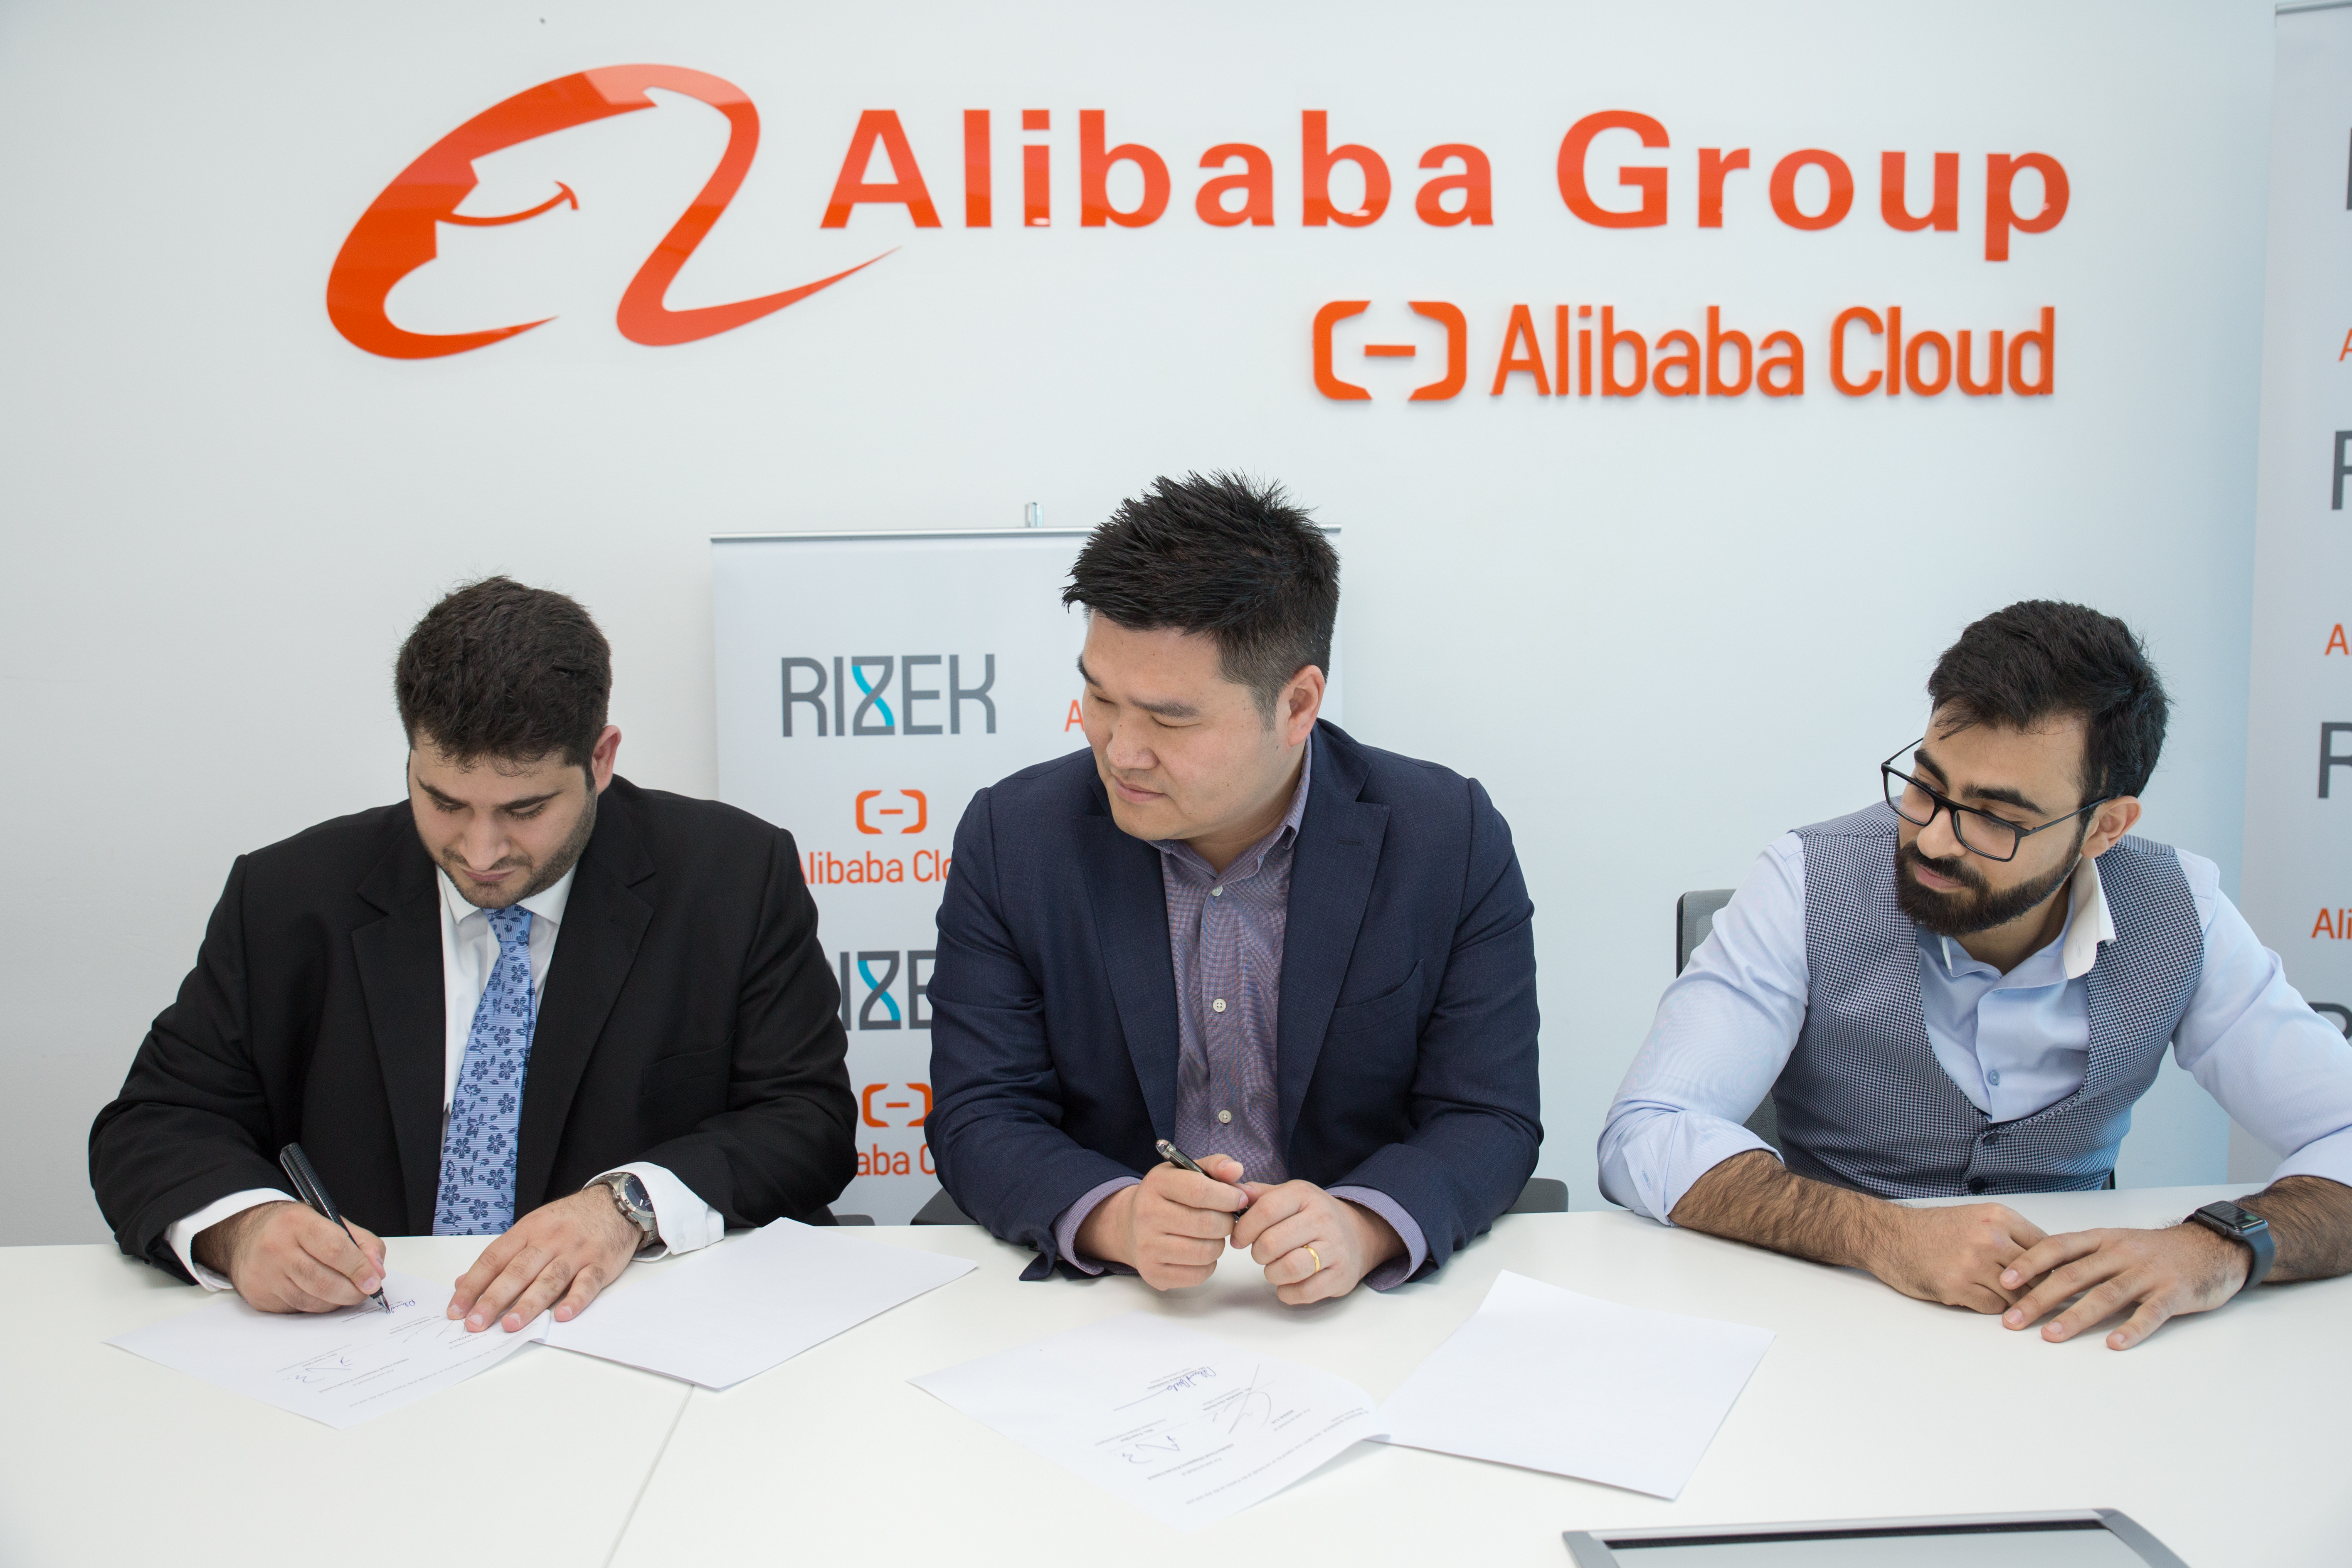 5 UAE-Based Companies That Have Inked Partnerships With Chinese Firms